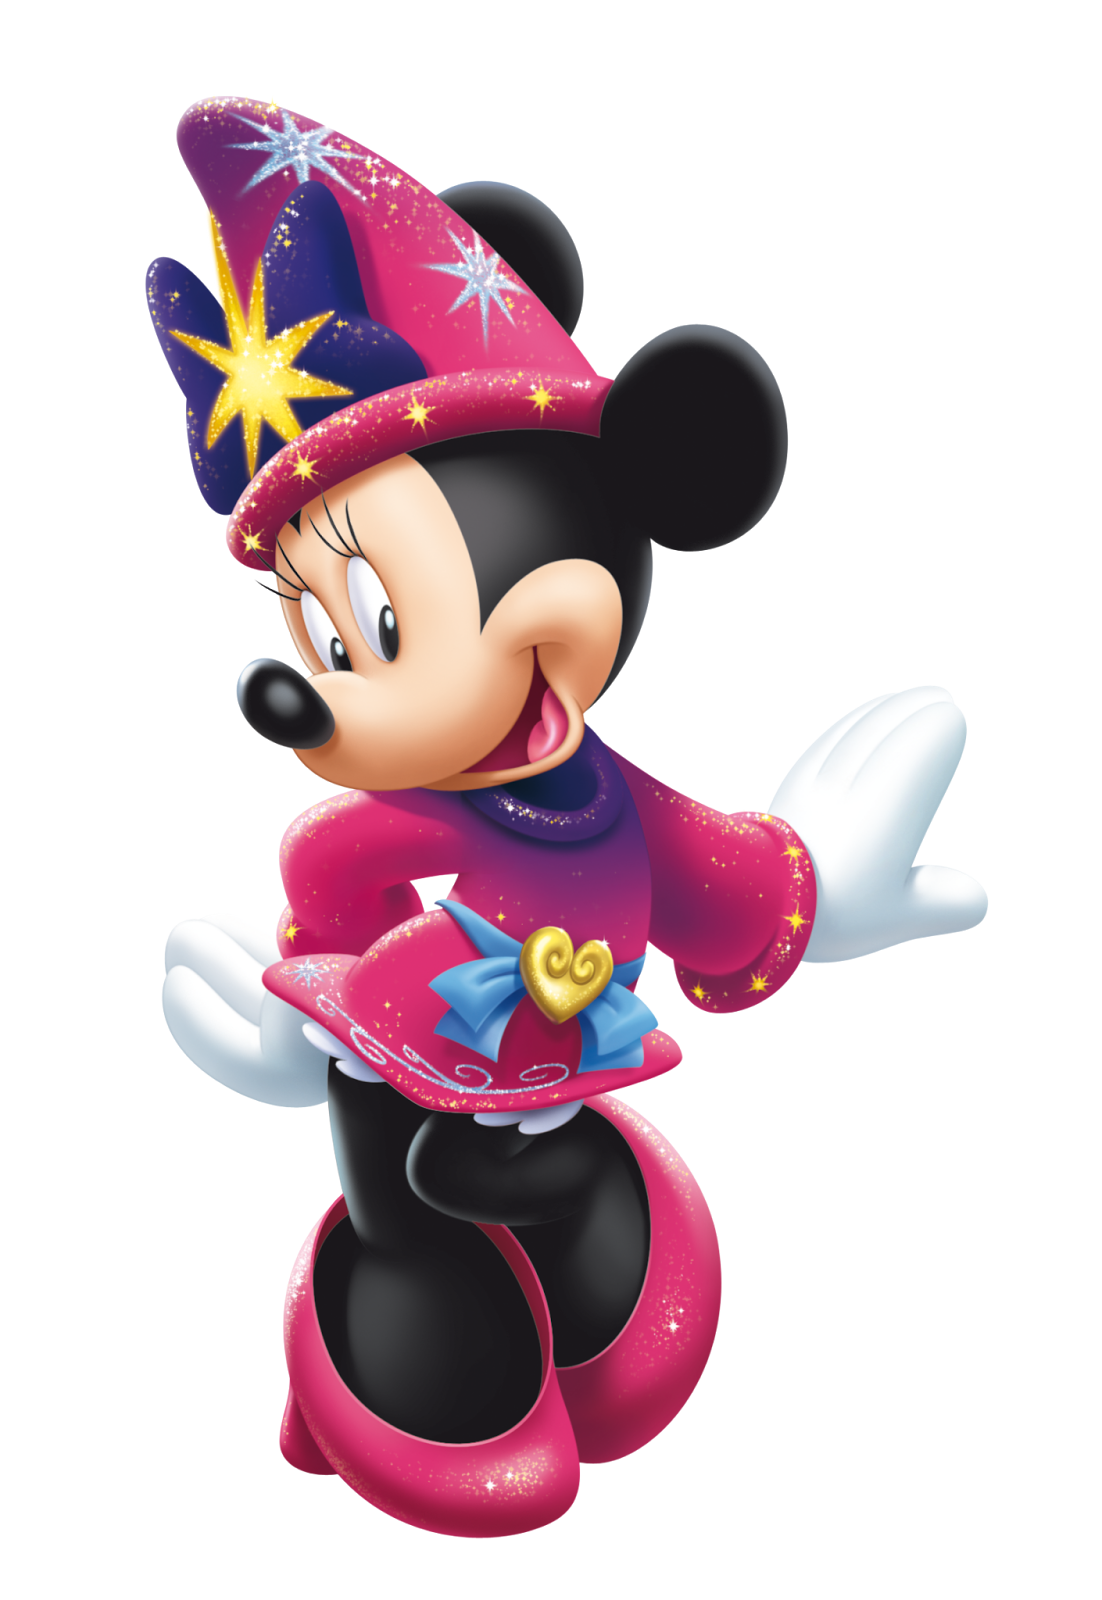 Png Collection Minnie Mouse Clipart image #34174